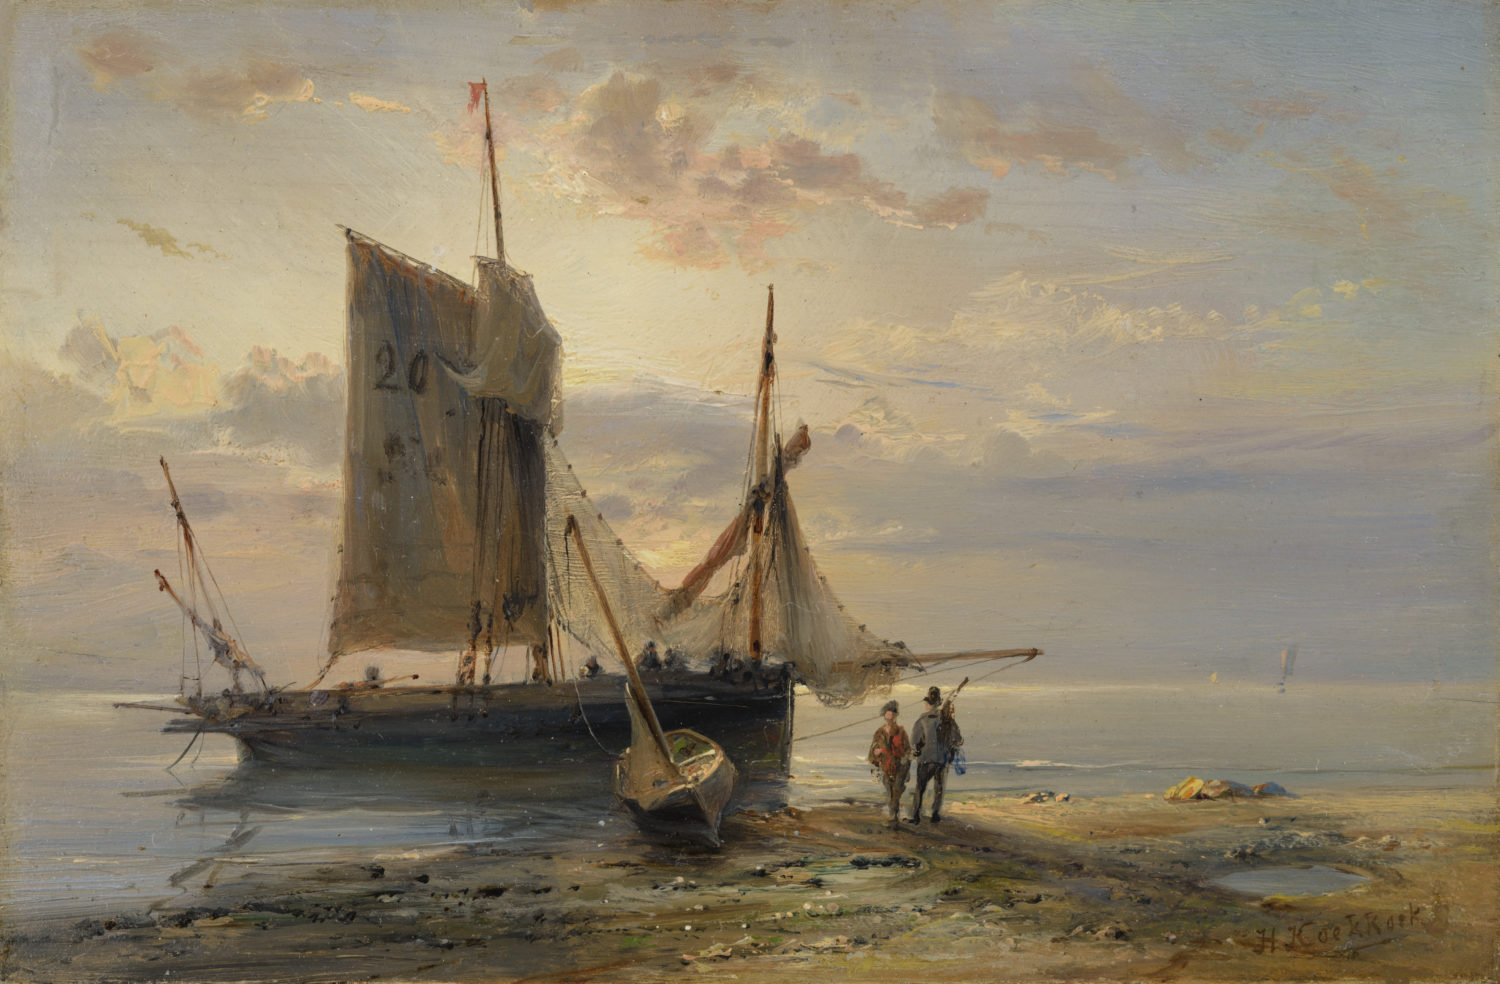 Hermanus Koekkoek | A sailing boat at anchor off the coast | Kunsthandel Bies | Bies Gallery